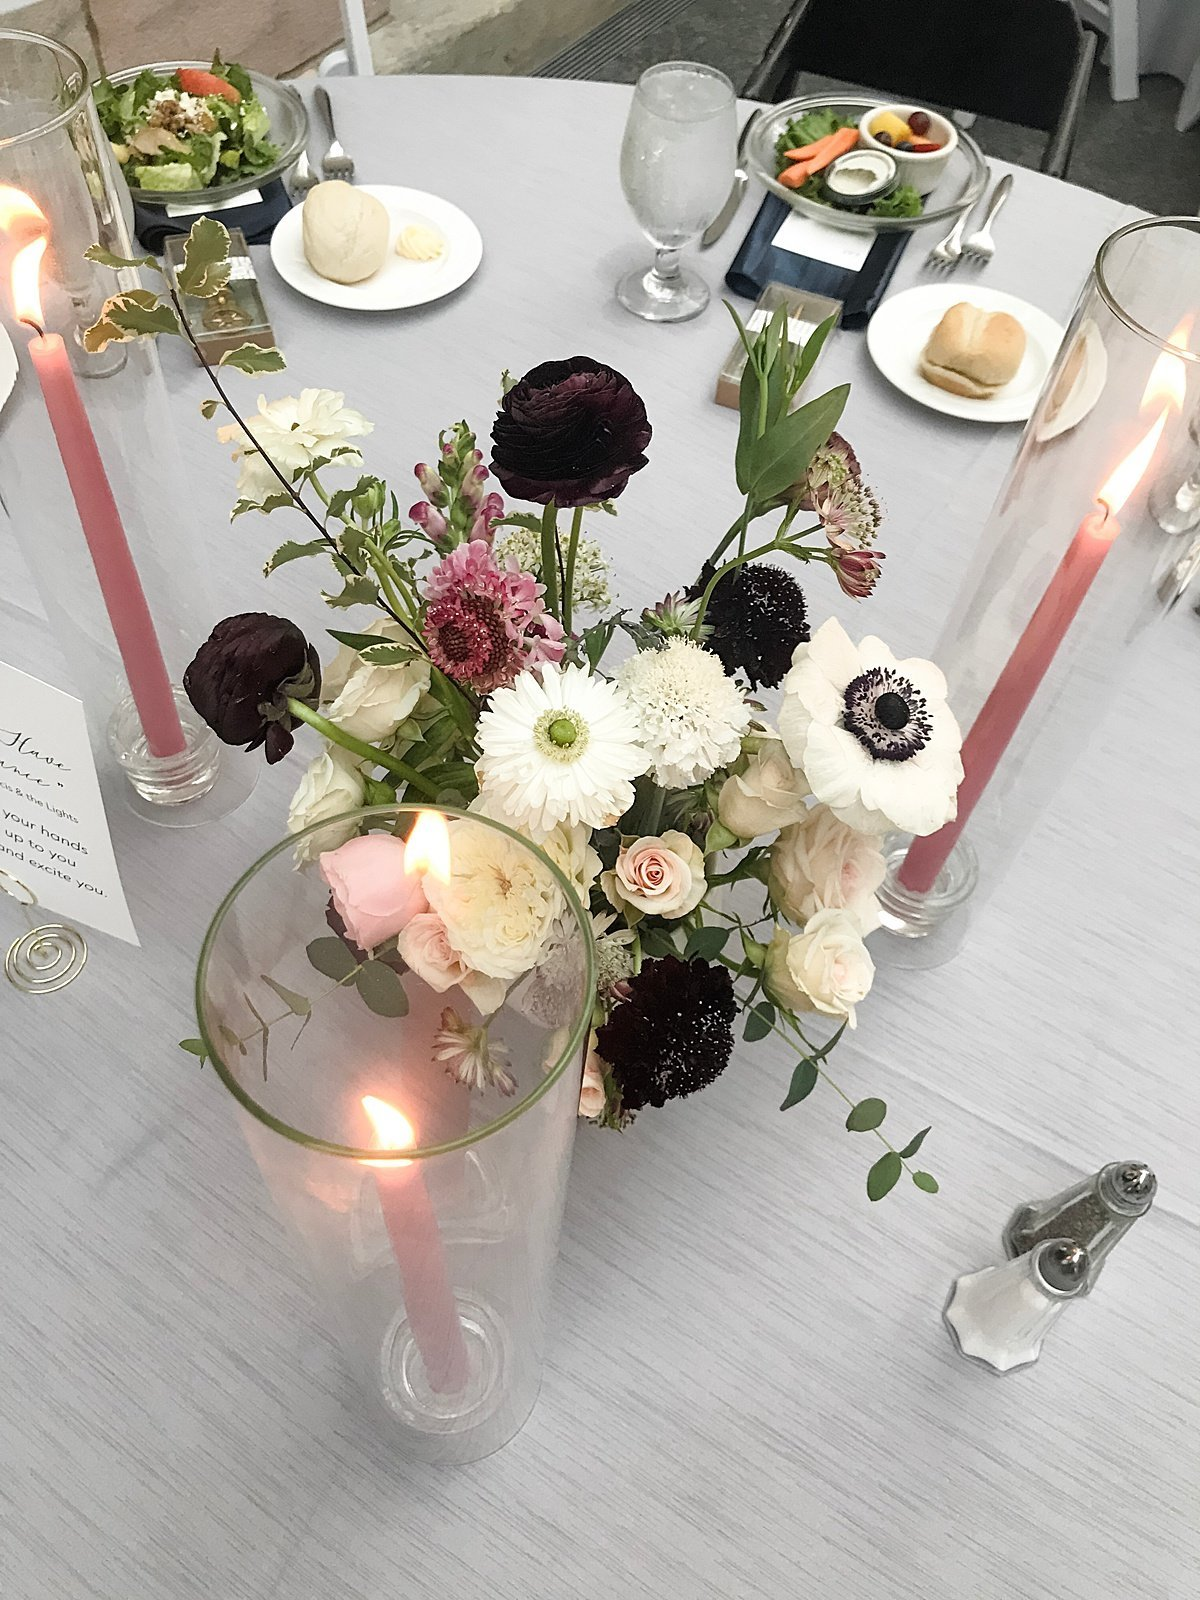 Modern-Black-Tie-Art-Museum-Floral-Wedding-in-blush-and-burgundy-at-the-Joslyn-art-museum-by-Lindsay-Elizabeth-Events-Omaha-Wedding-Florist-and-Coordinator15